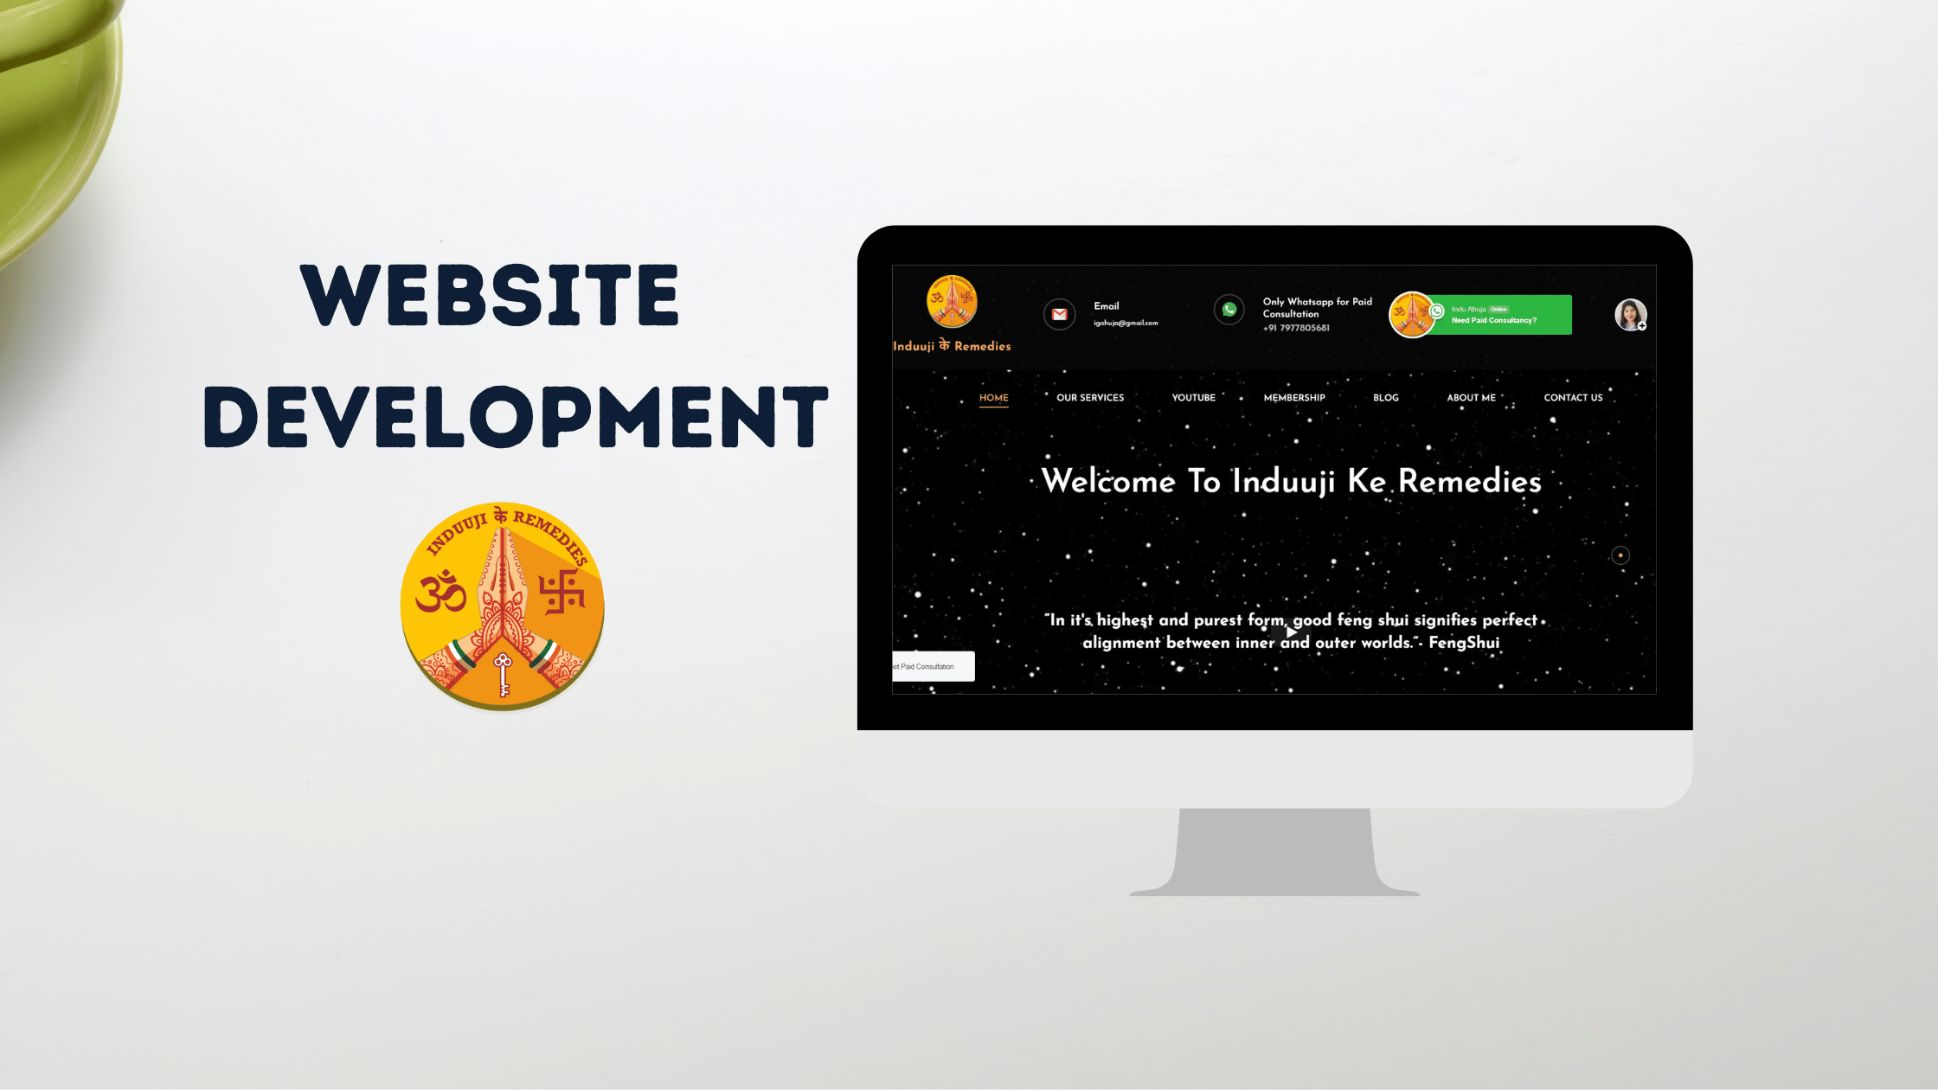 Induji Ke Remedies website development featured image